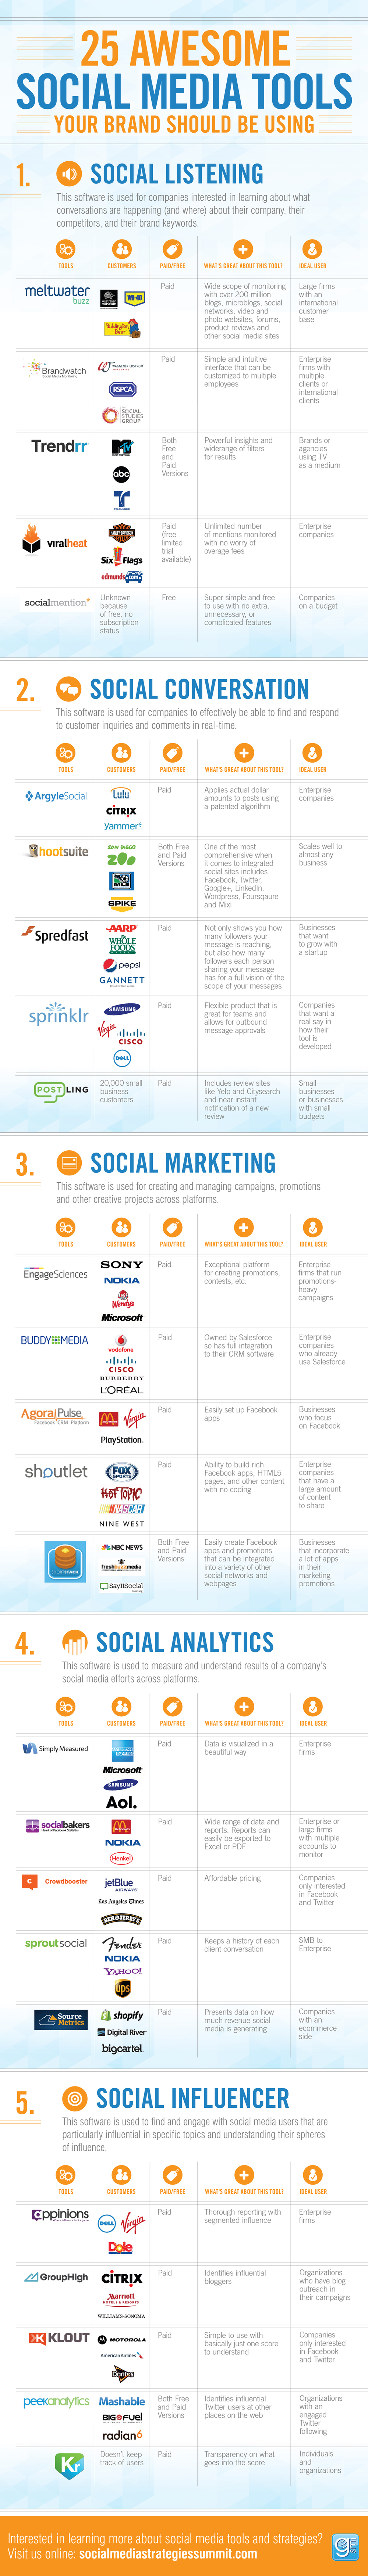 GSMI_Top-25_Social_Media_Tools_Infographic_v41.jpg